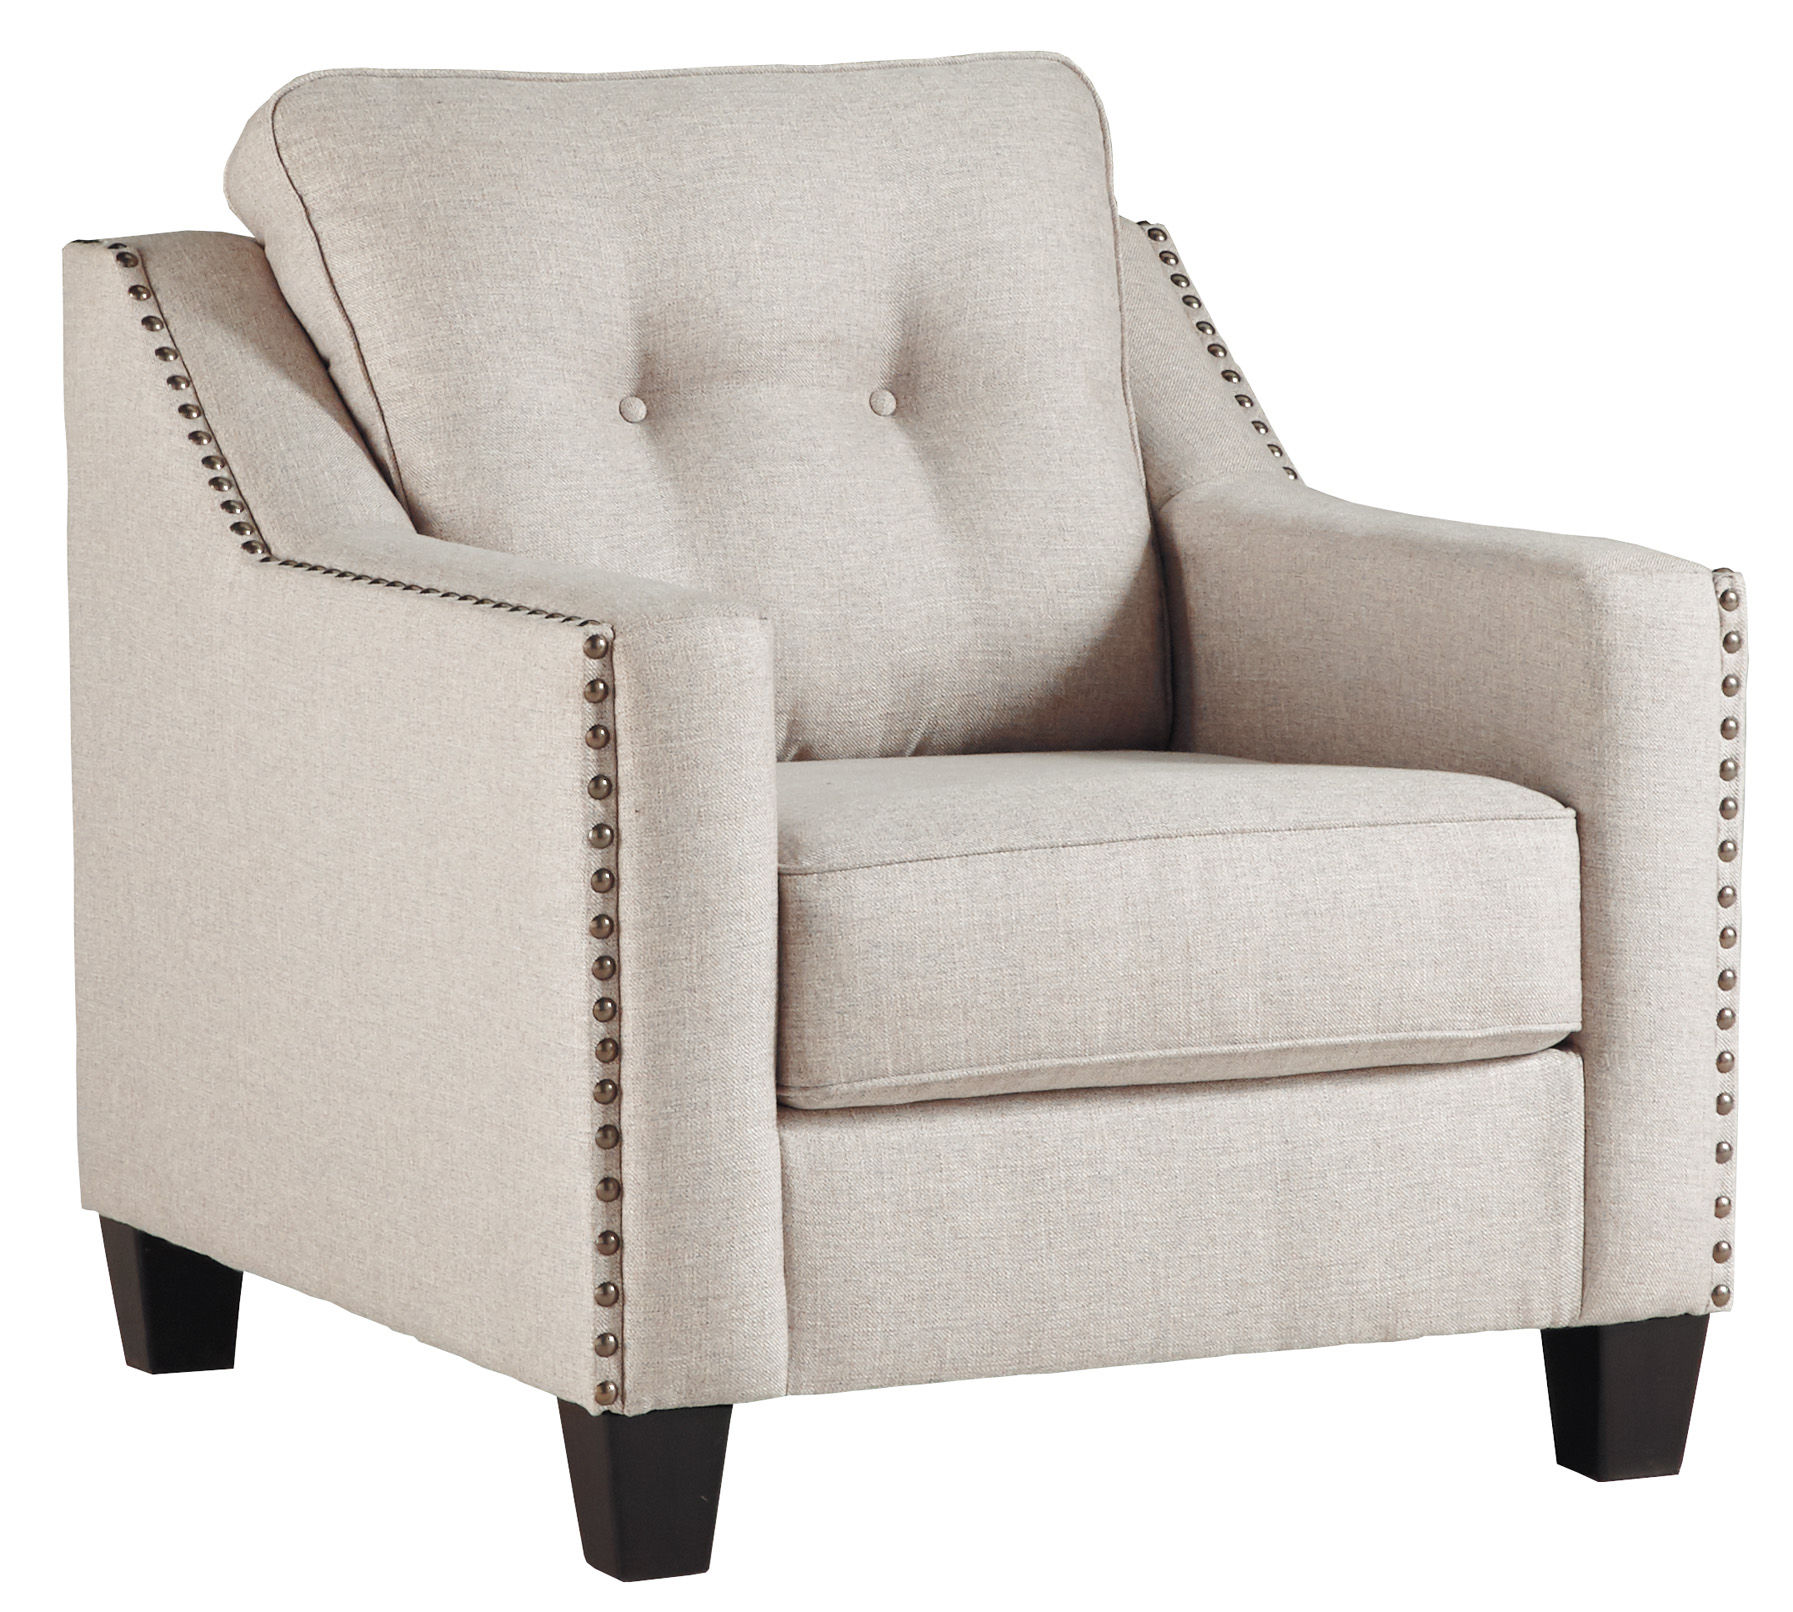 Pleasing Ashley Furniture Marrero Fog Chair The Classy Home Andrewgaddart Wooden Chair Designs For Living Room Andrewgaddartcom